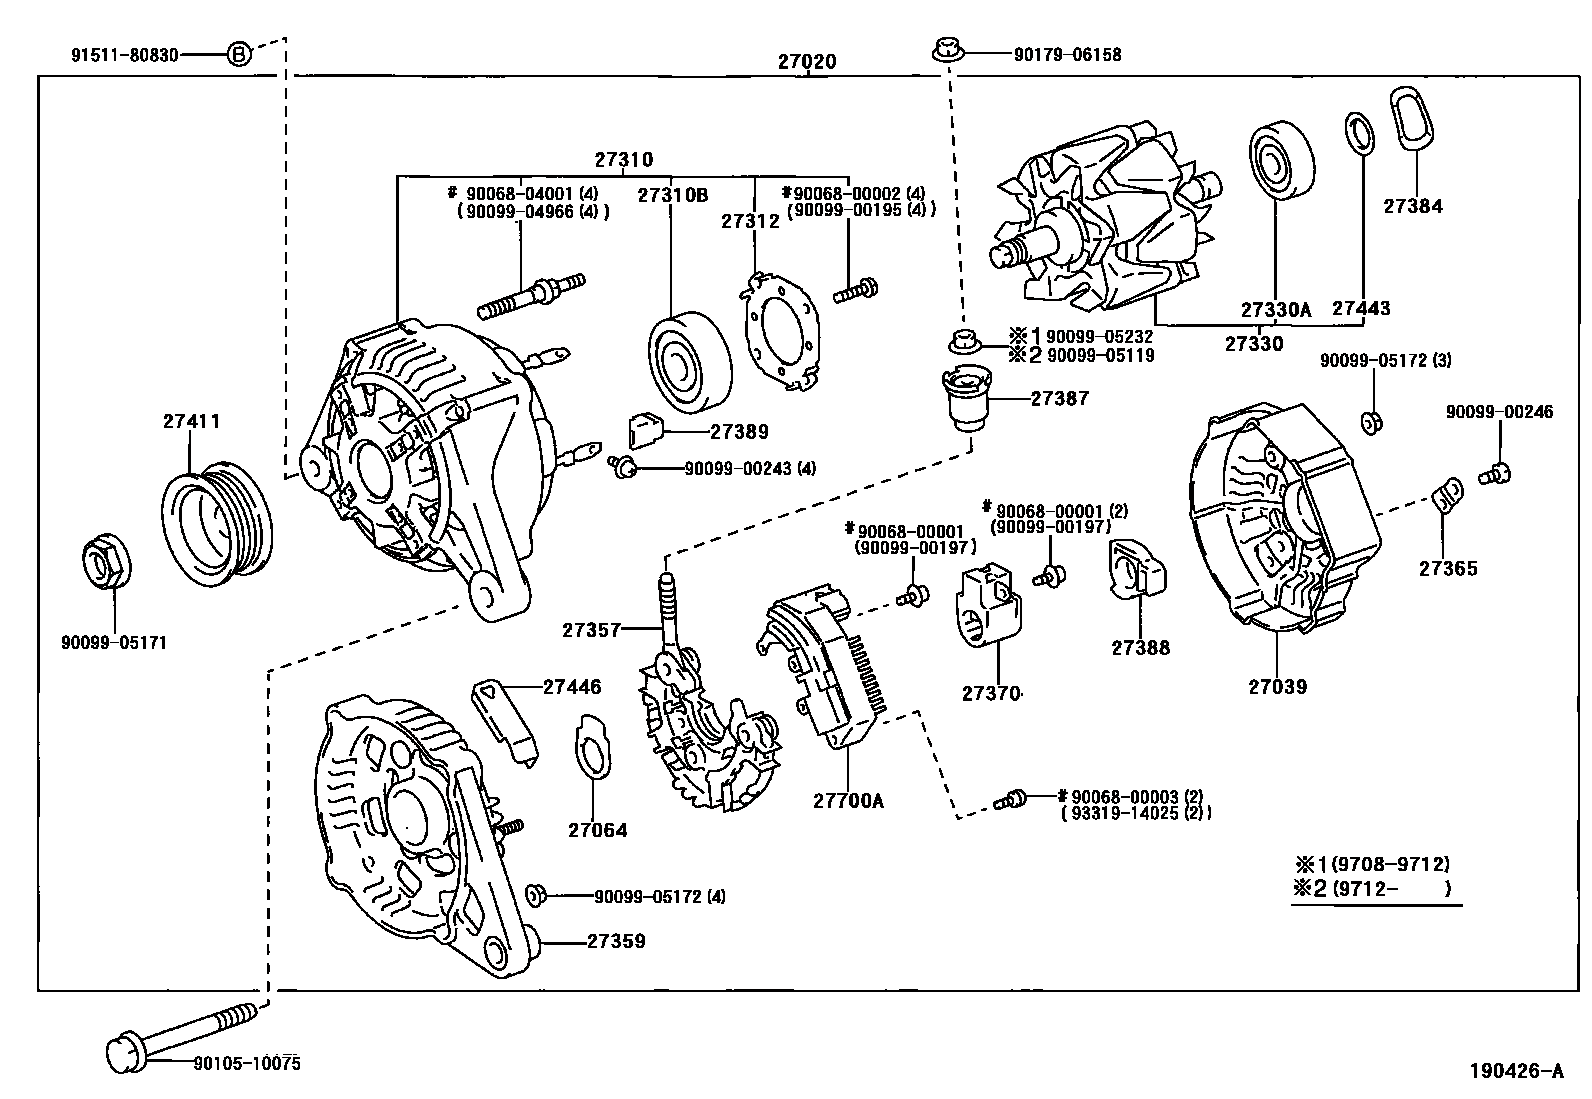 V6 Engines Diagram With Names